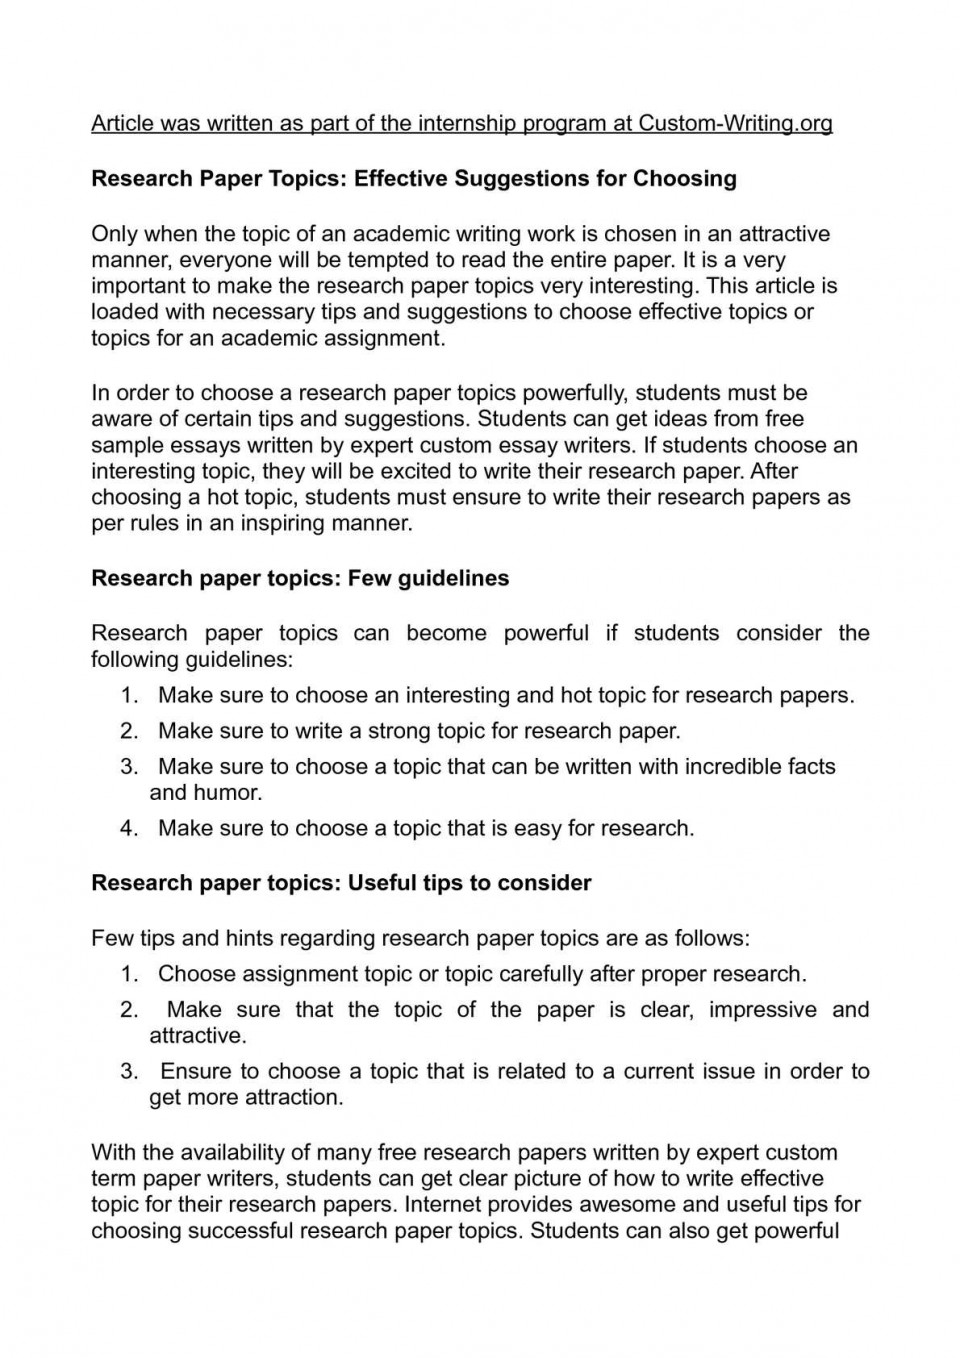 019 Research Paper Topics For Awful Chemistry High School Good In College International Law 960